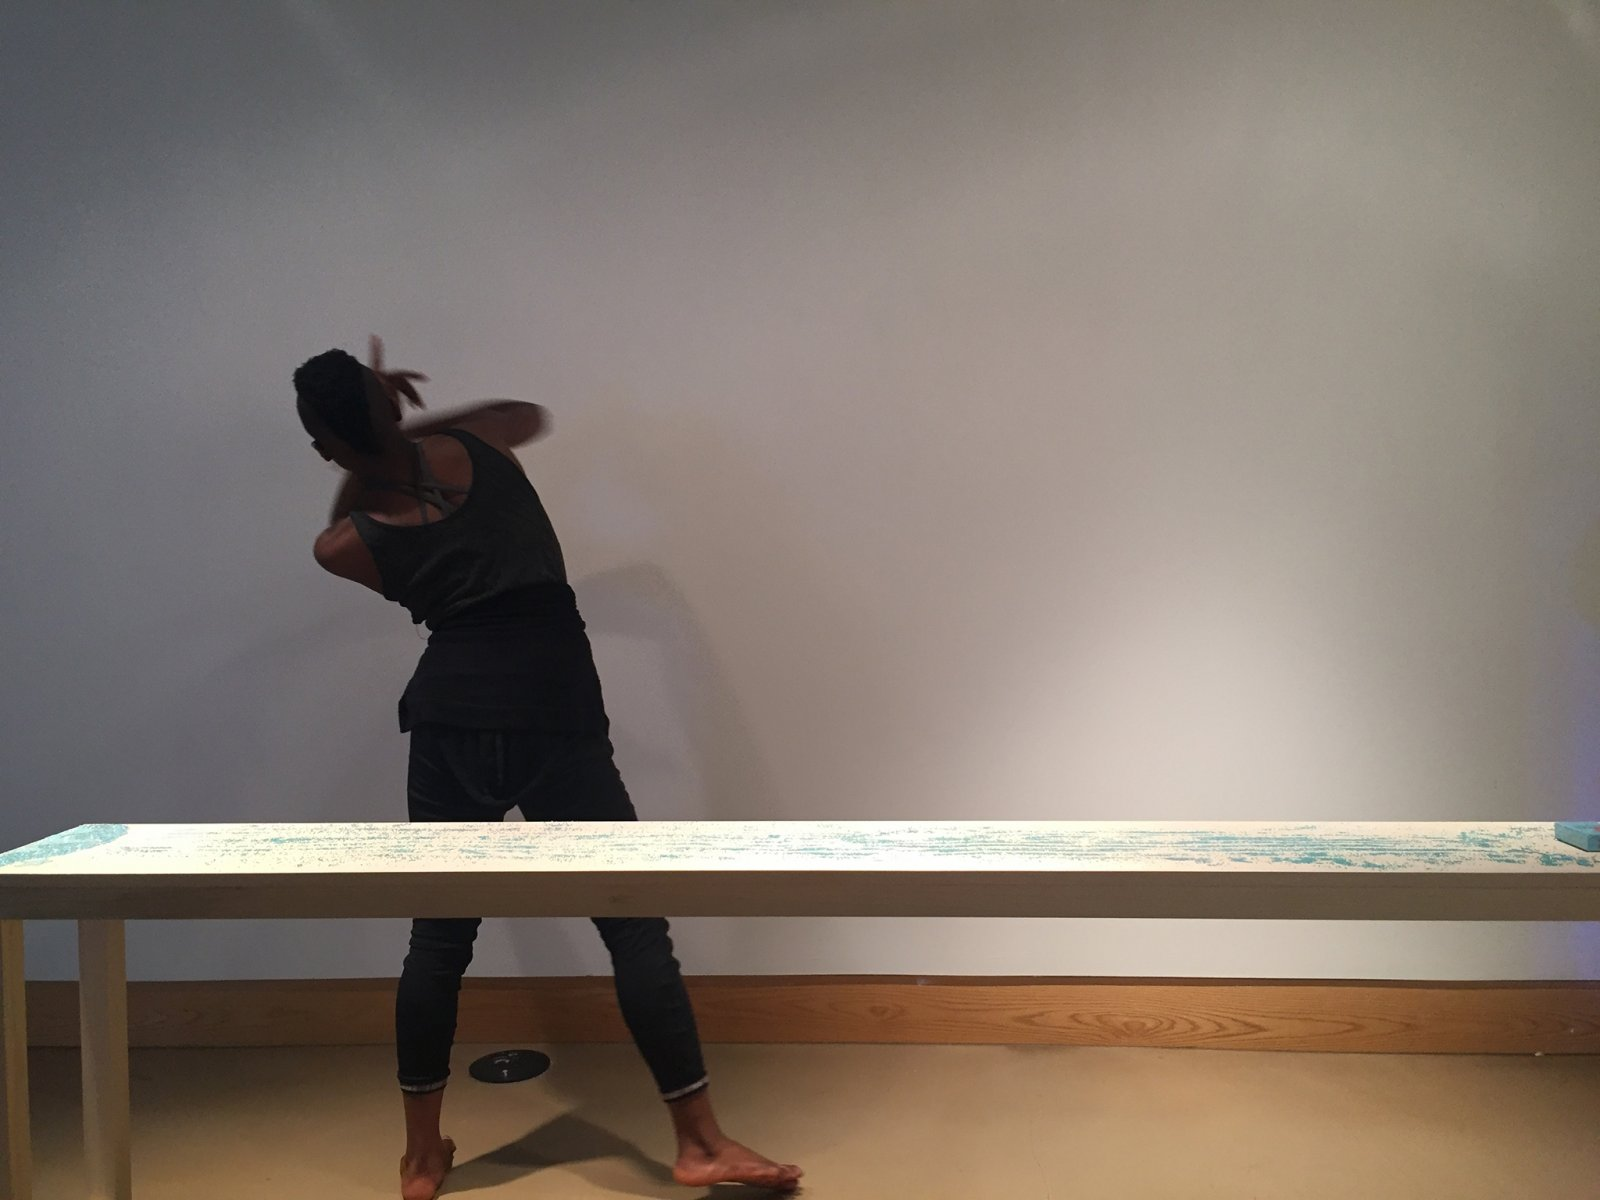 Tanya Lukin Linklater, Slow Scrape and the Harvest Sturdies, 2013–2017, site-specific performance. Performance documentation, The Harvest Sturdies, All My Relations Arts, Minneapolis, USA, 2017